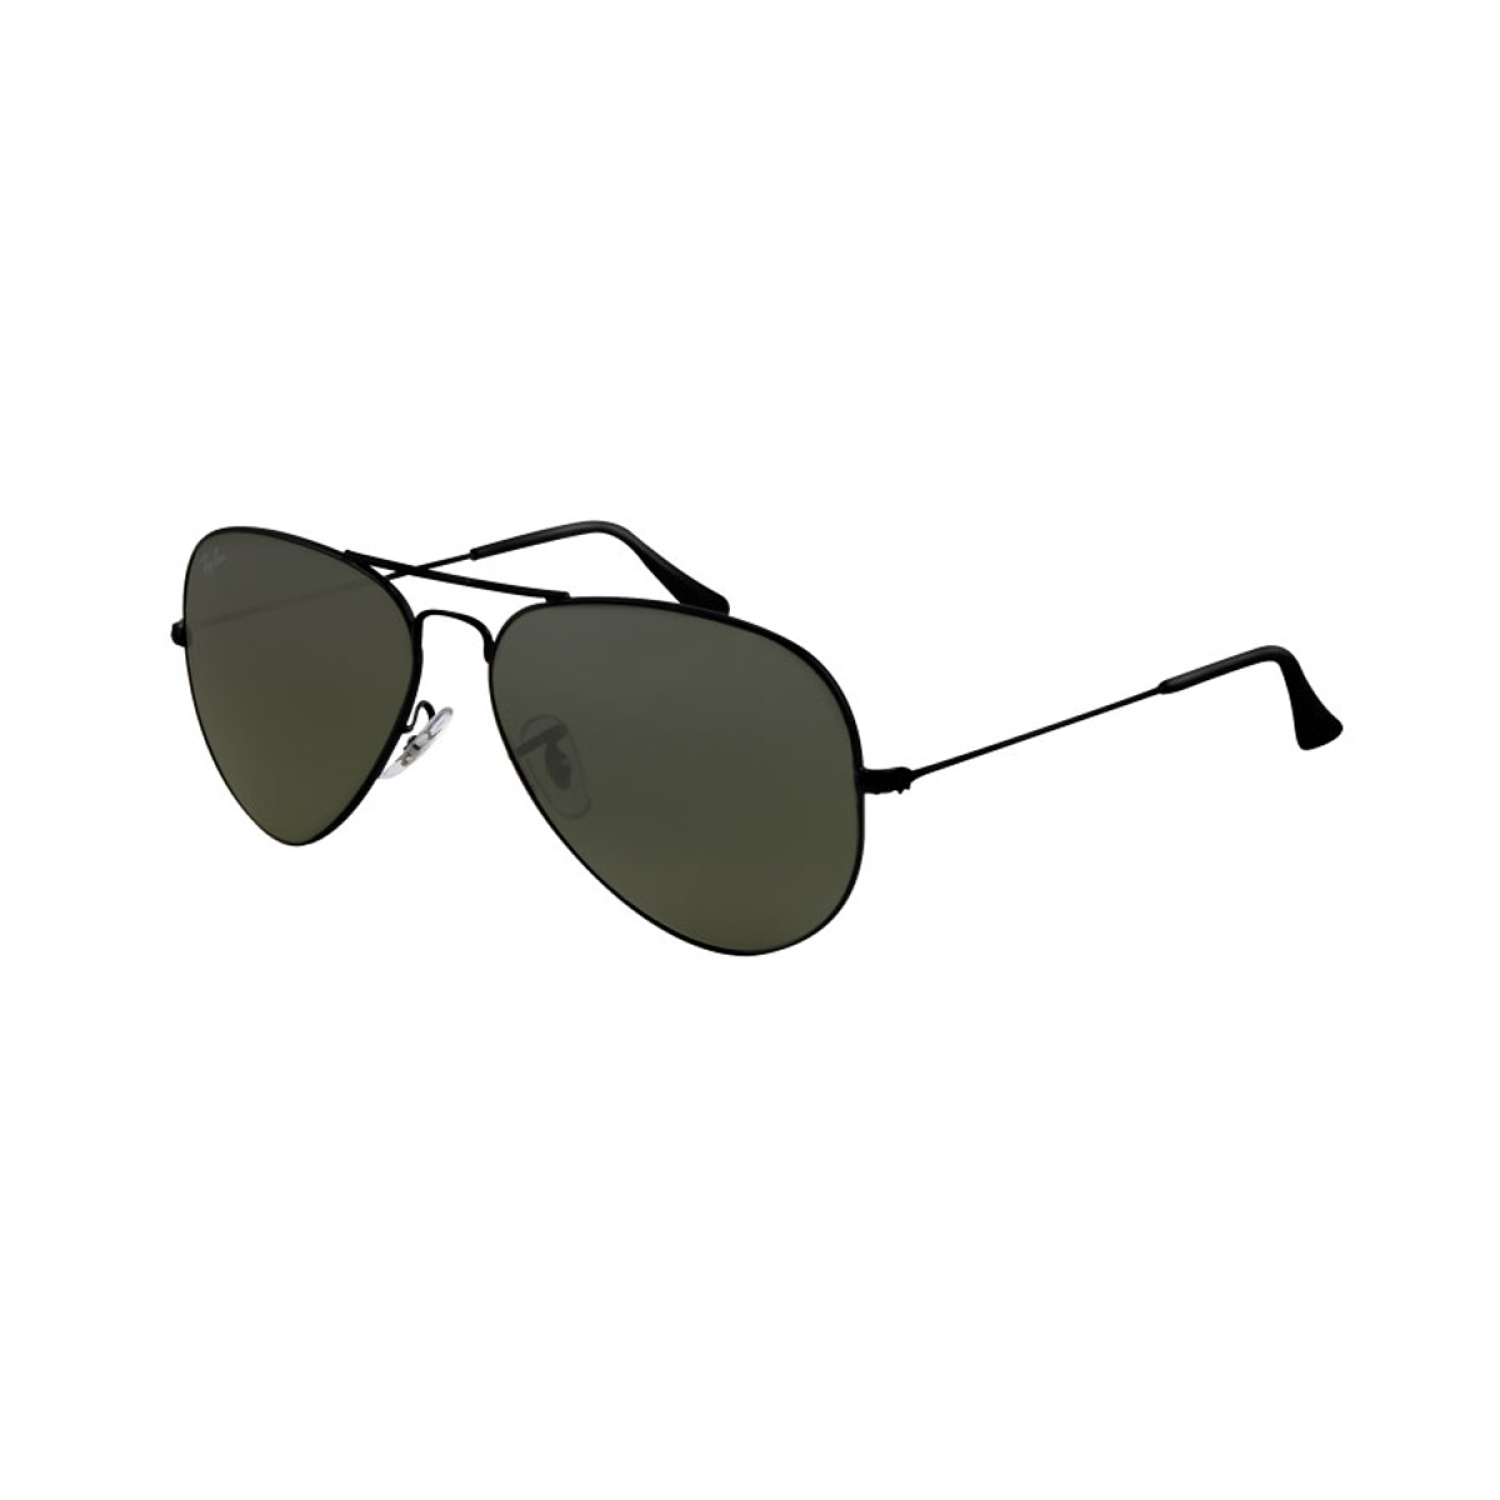 Ray-Ban Men's Polarized Aviator RB3025-002/58-58 Black Sunglass